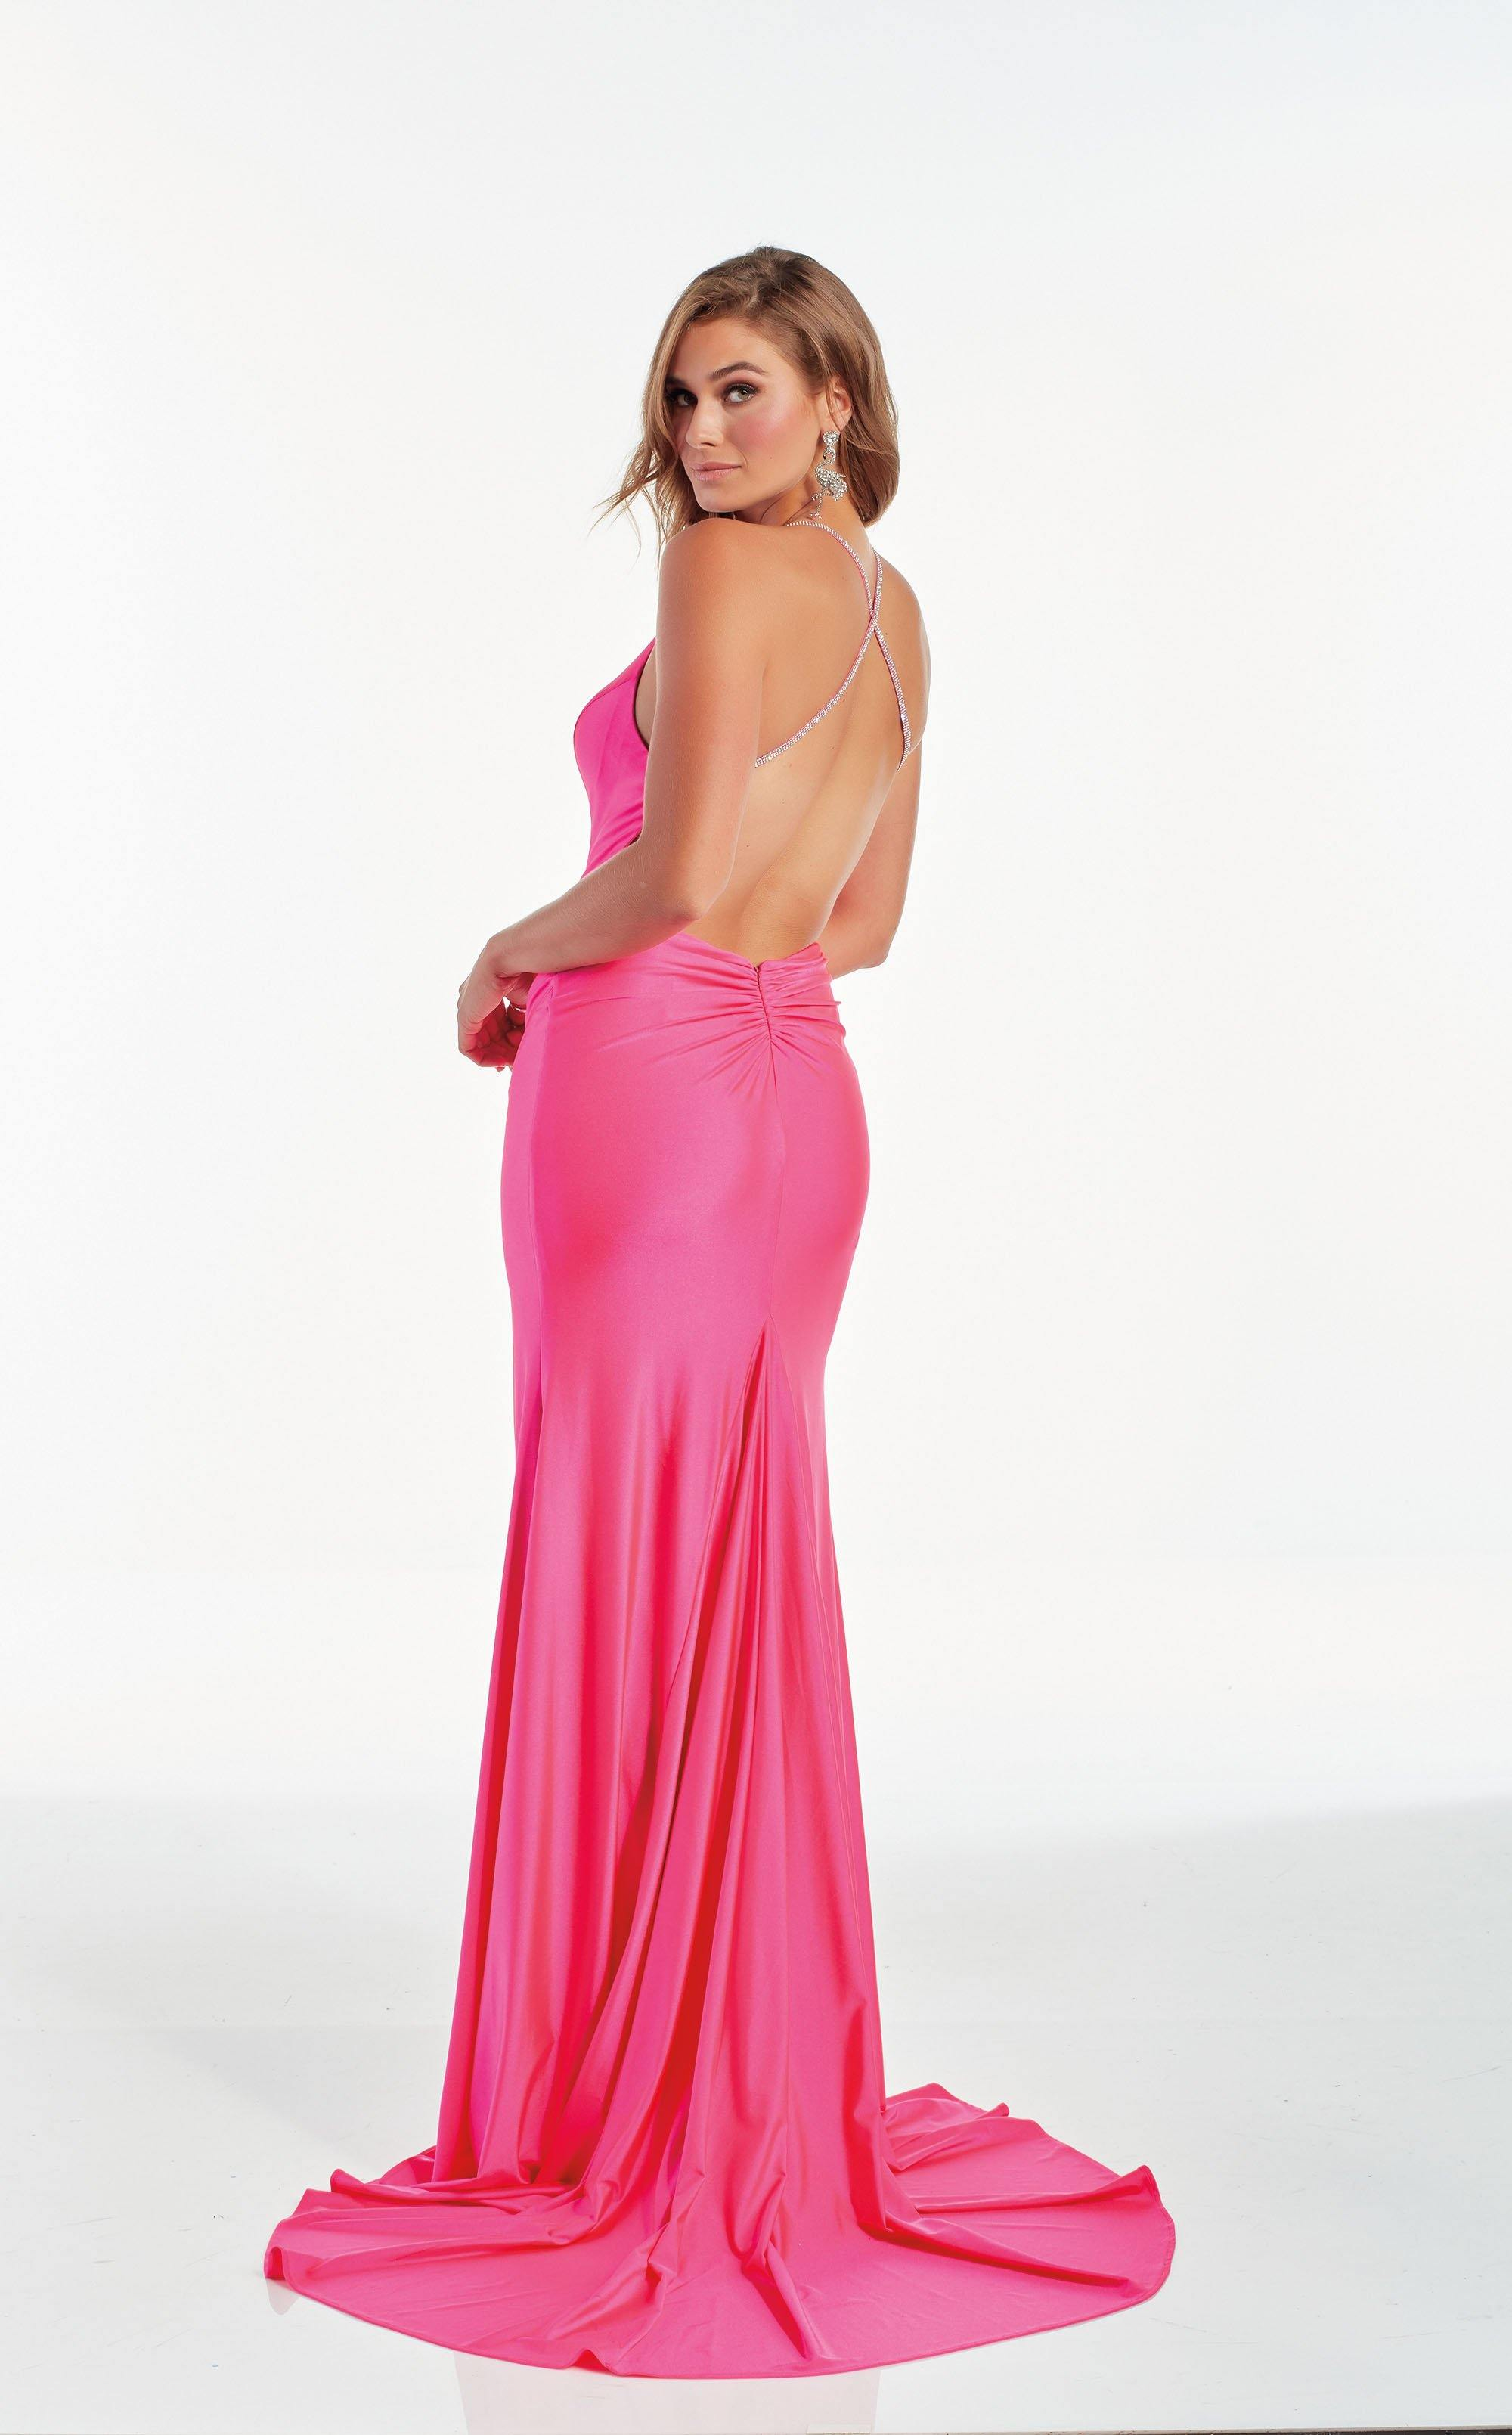 Barbie Pink slinky prom dress with a V neckline, stone embellished straps, and high slit